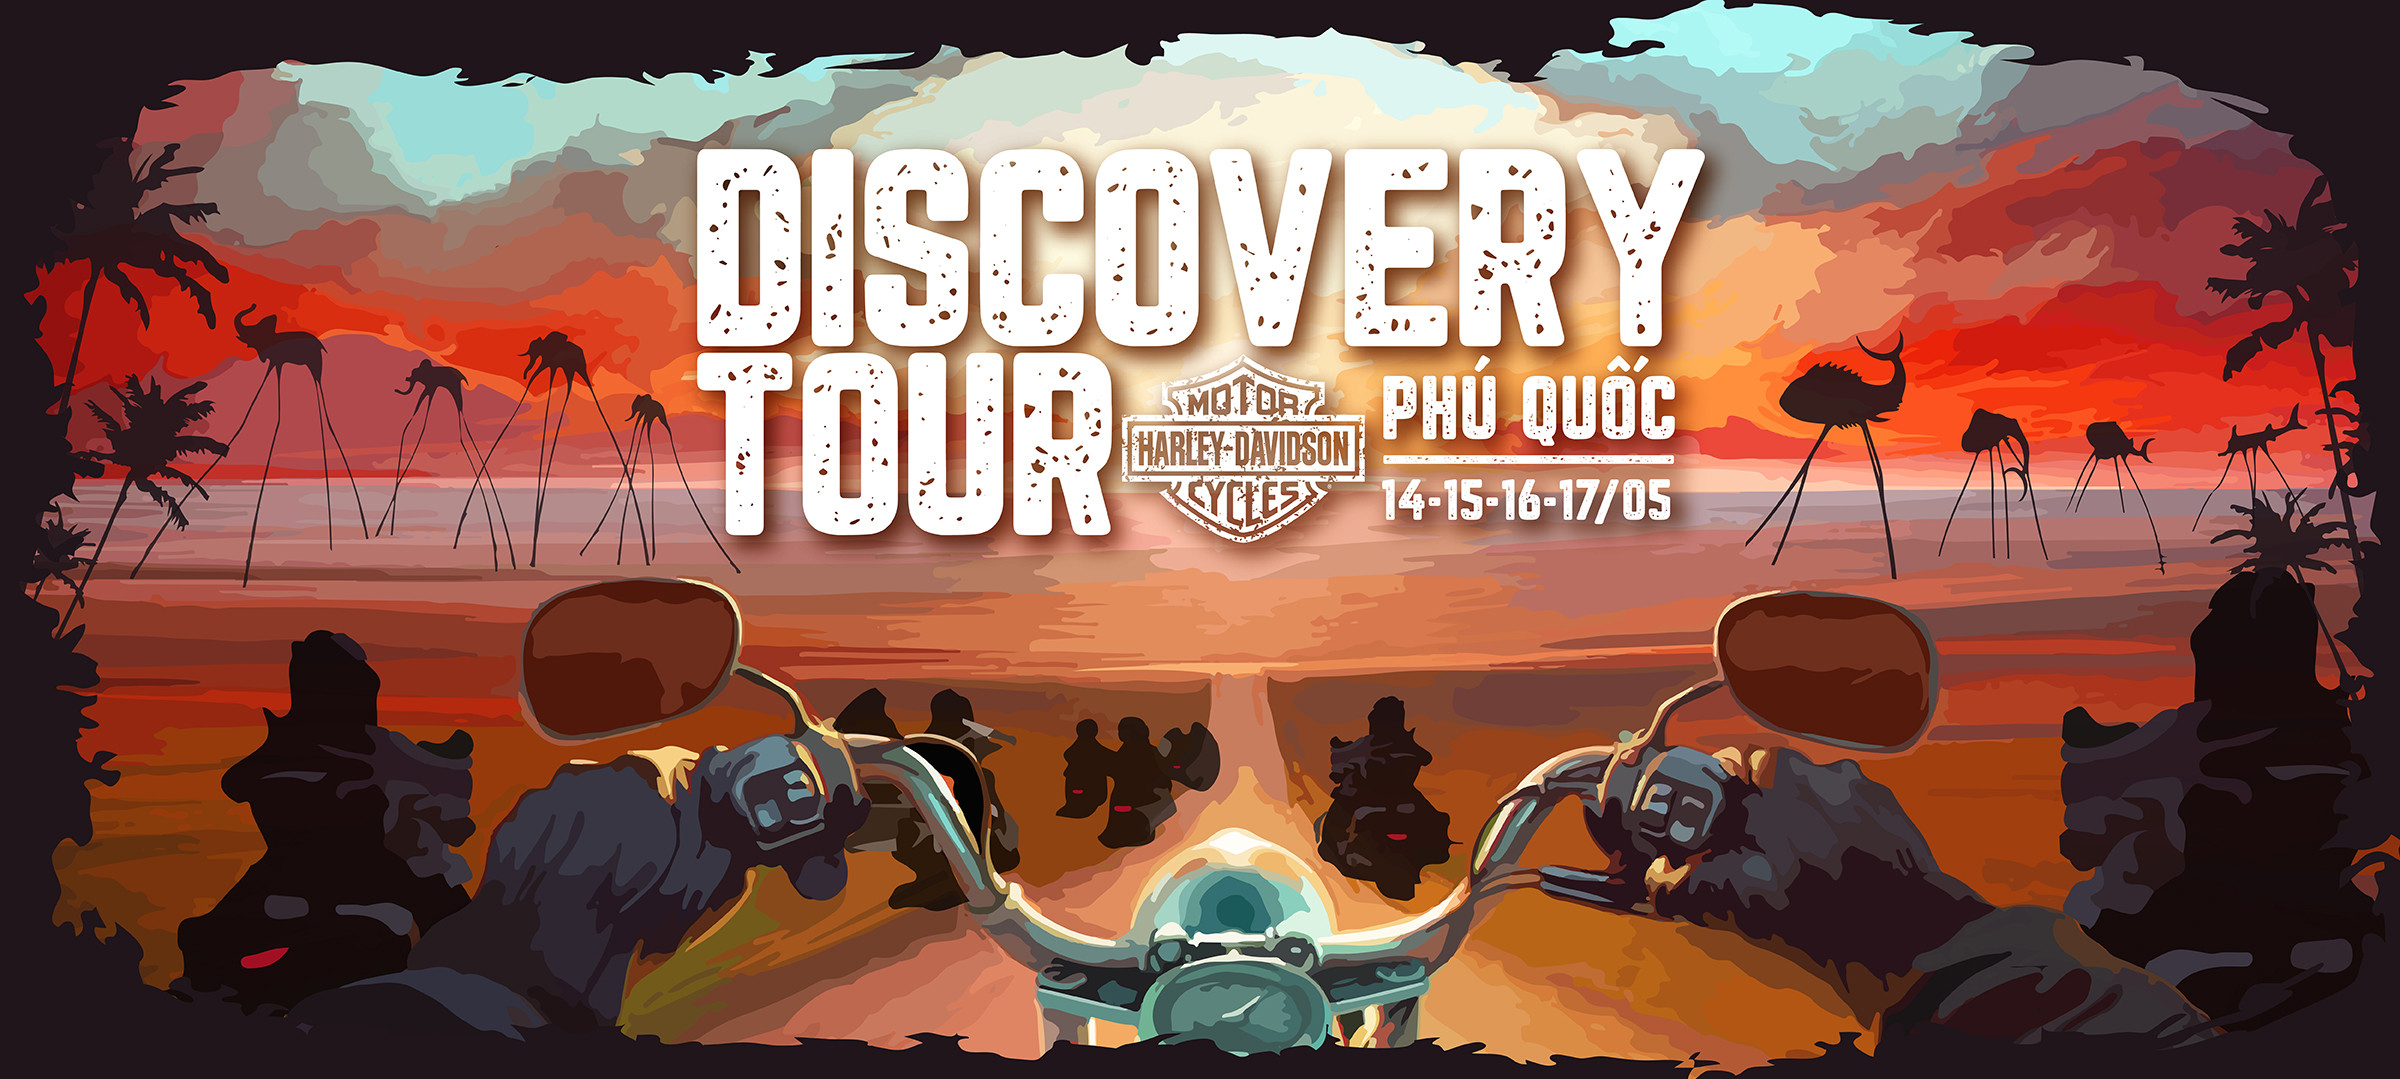 Phu-quoc-discovery-tour